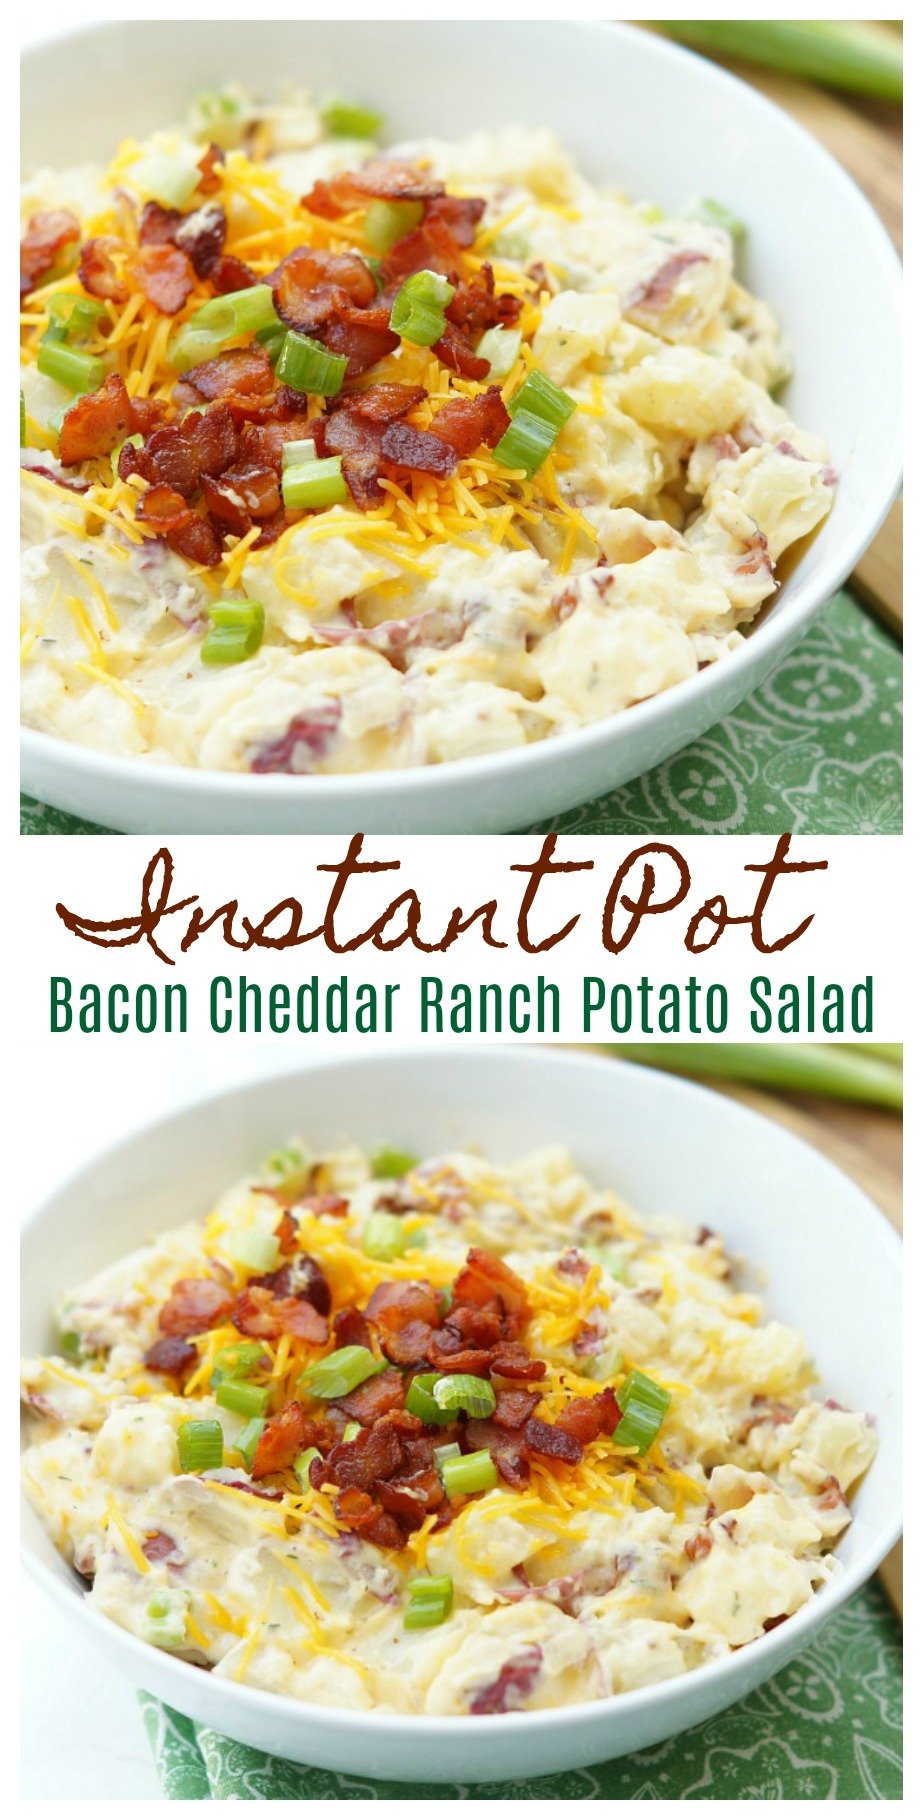 Instant Pot Bacon Cheddar Ranch Potato Salad. This easy side dish recipe will replace your traditional potato salad recipe!